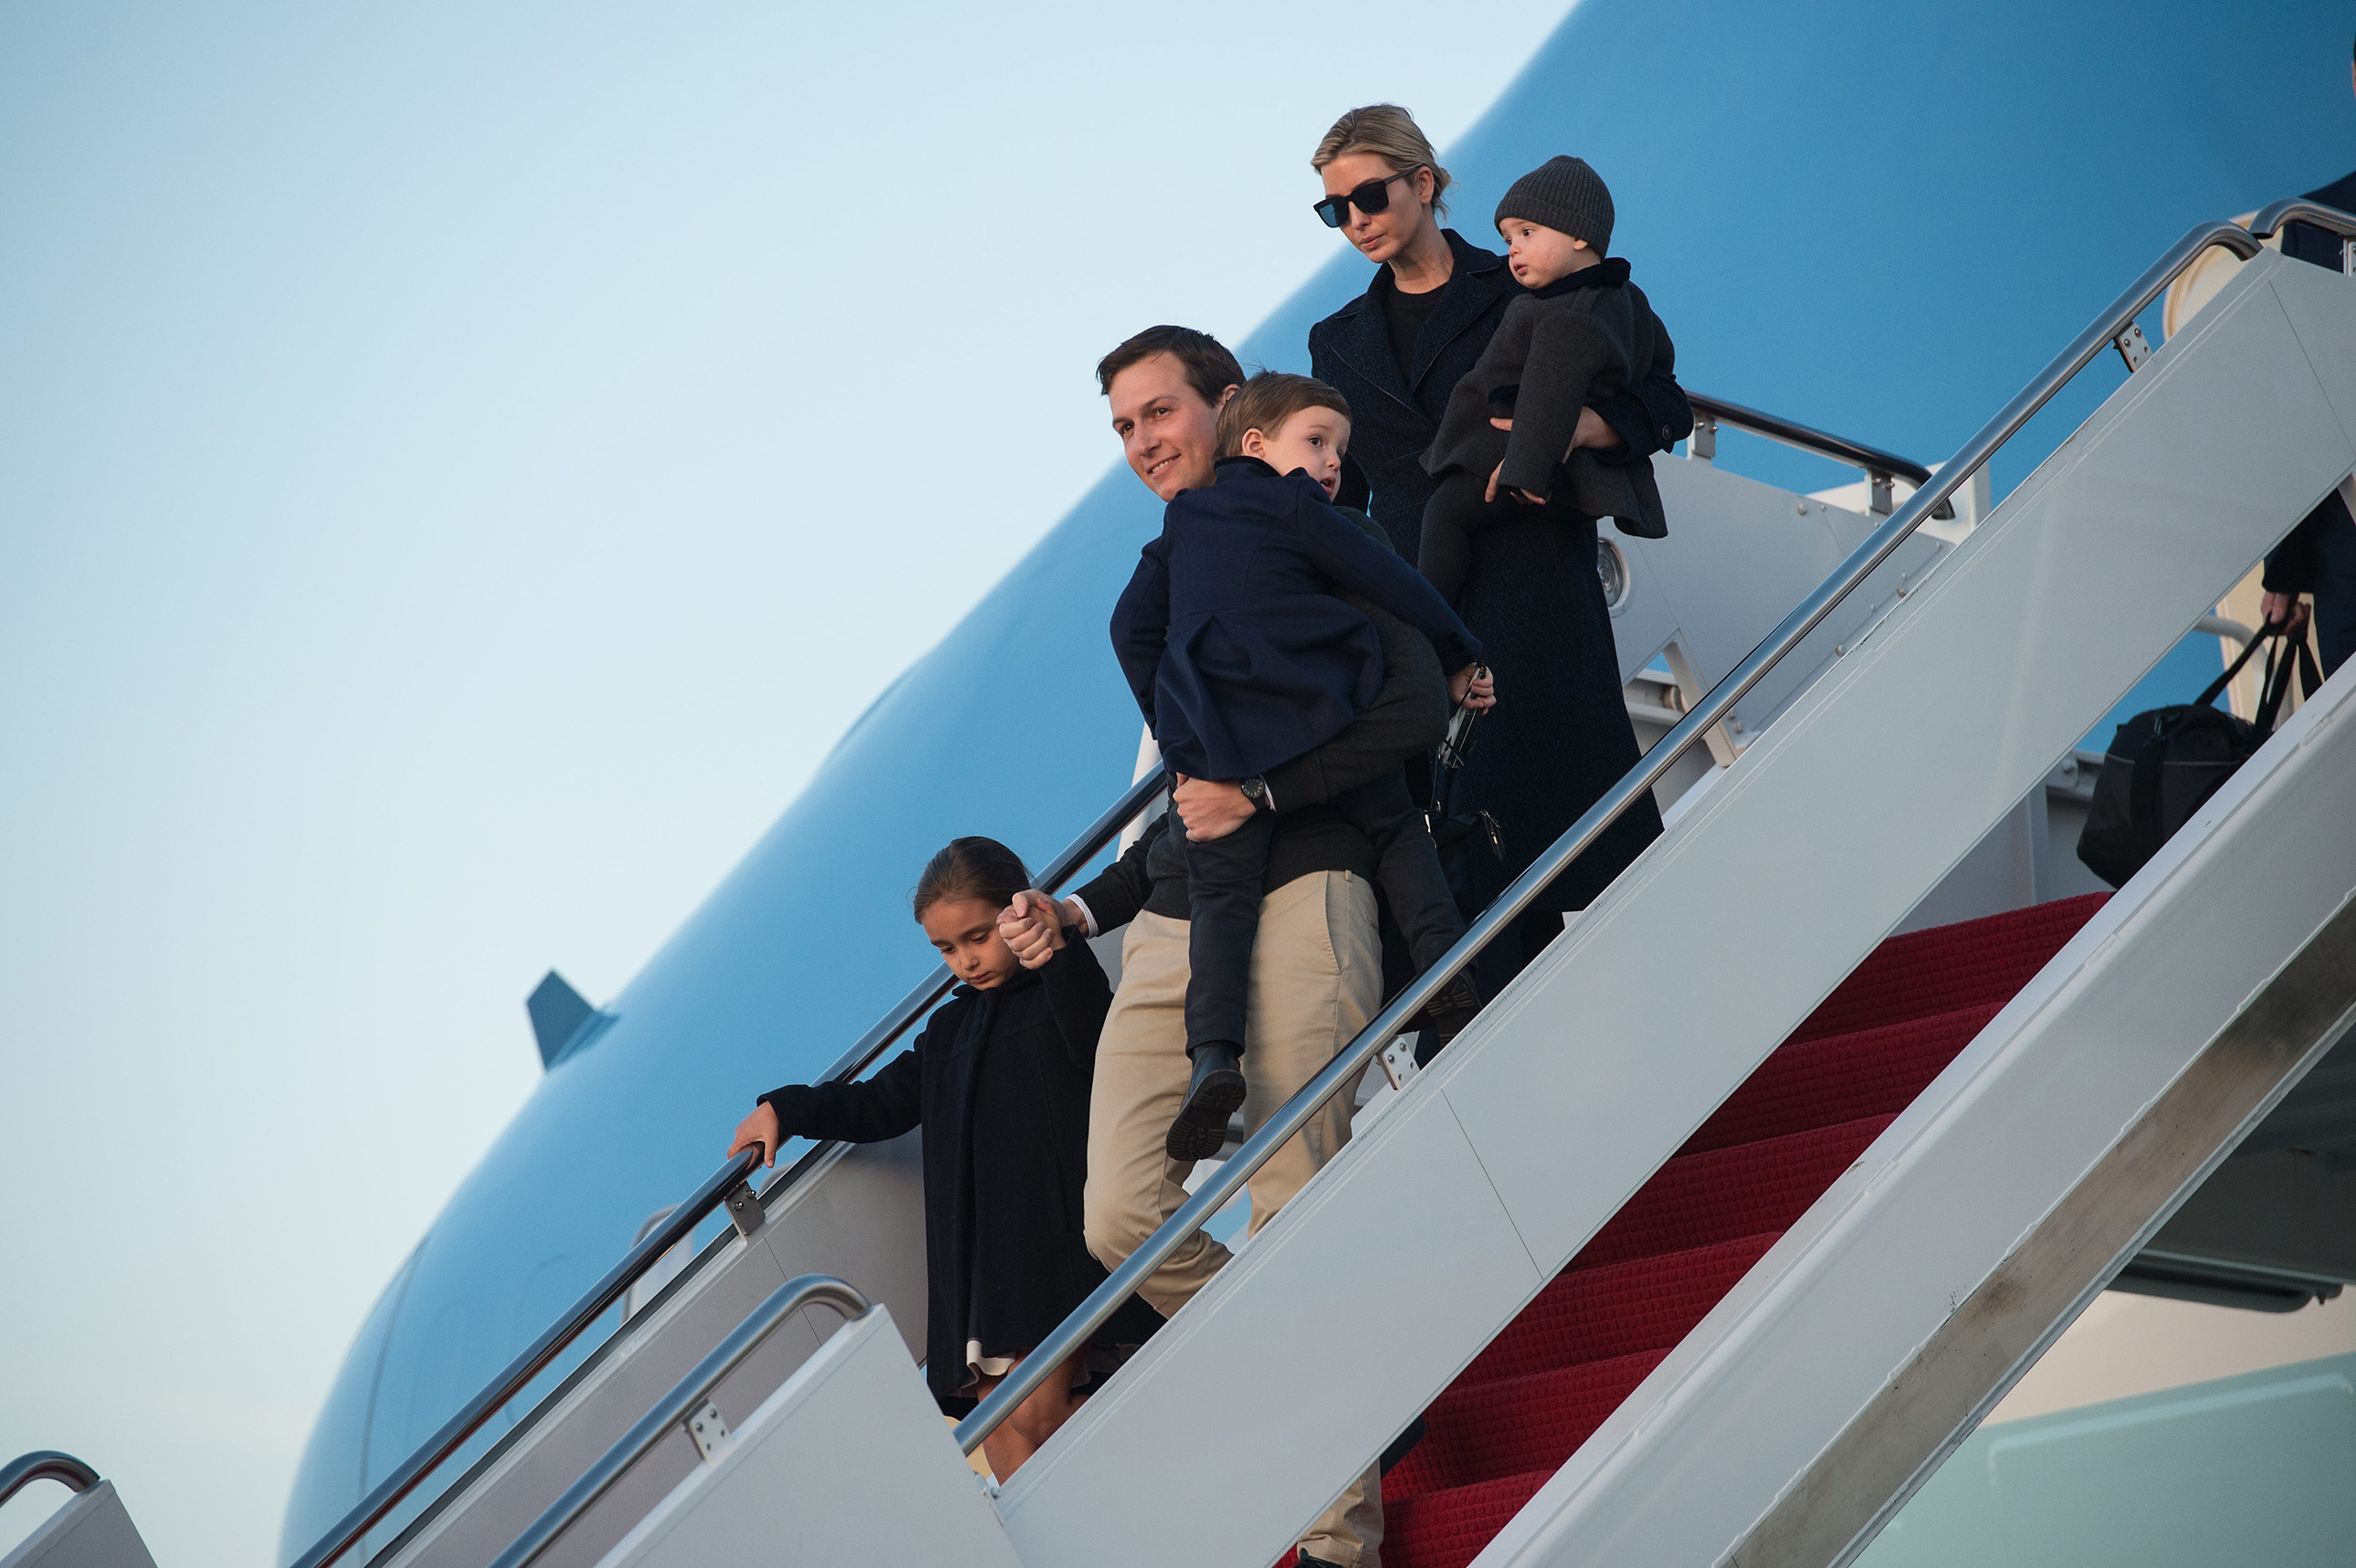 Jared Kushner and his wife Ivanka Trump step off Air Force One with their children Arabella (L), Joseph (C) and Theodore at Andrews Air Force Base in Maryland, on March 5, 2017.